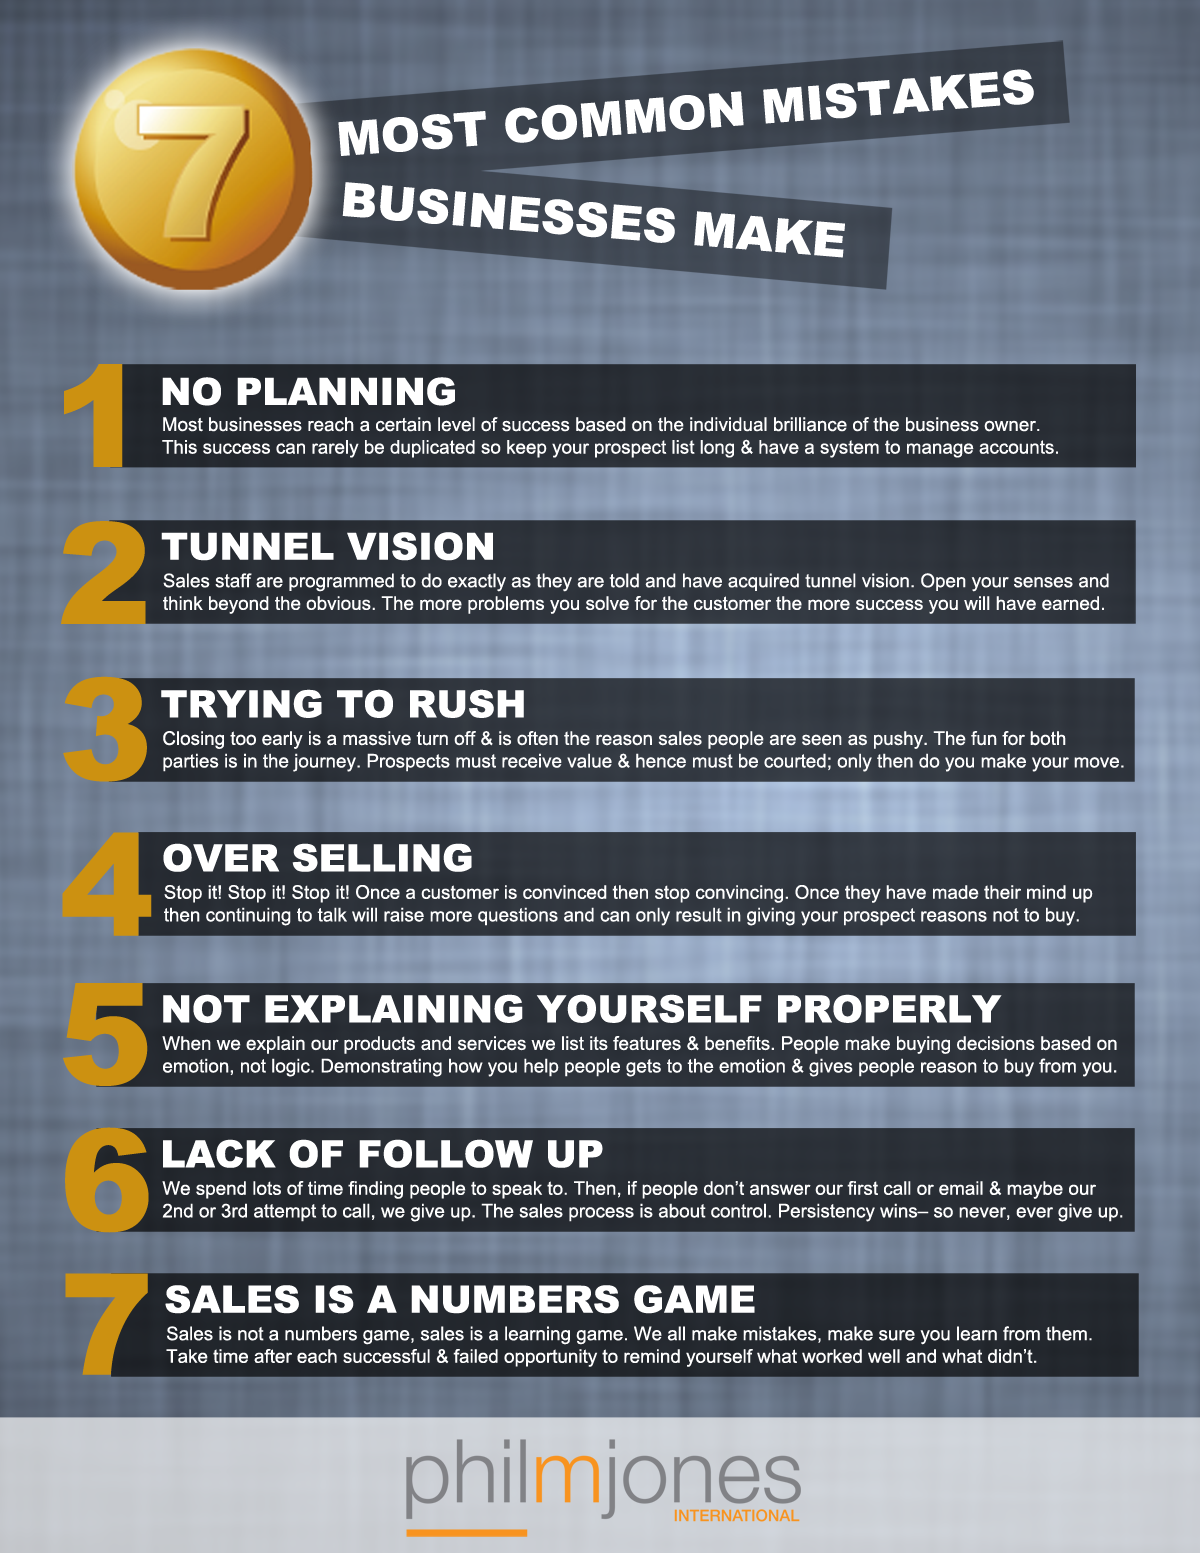 7 Most Common Business Mistakes